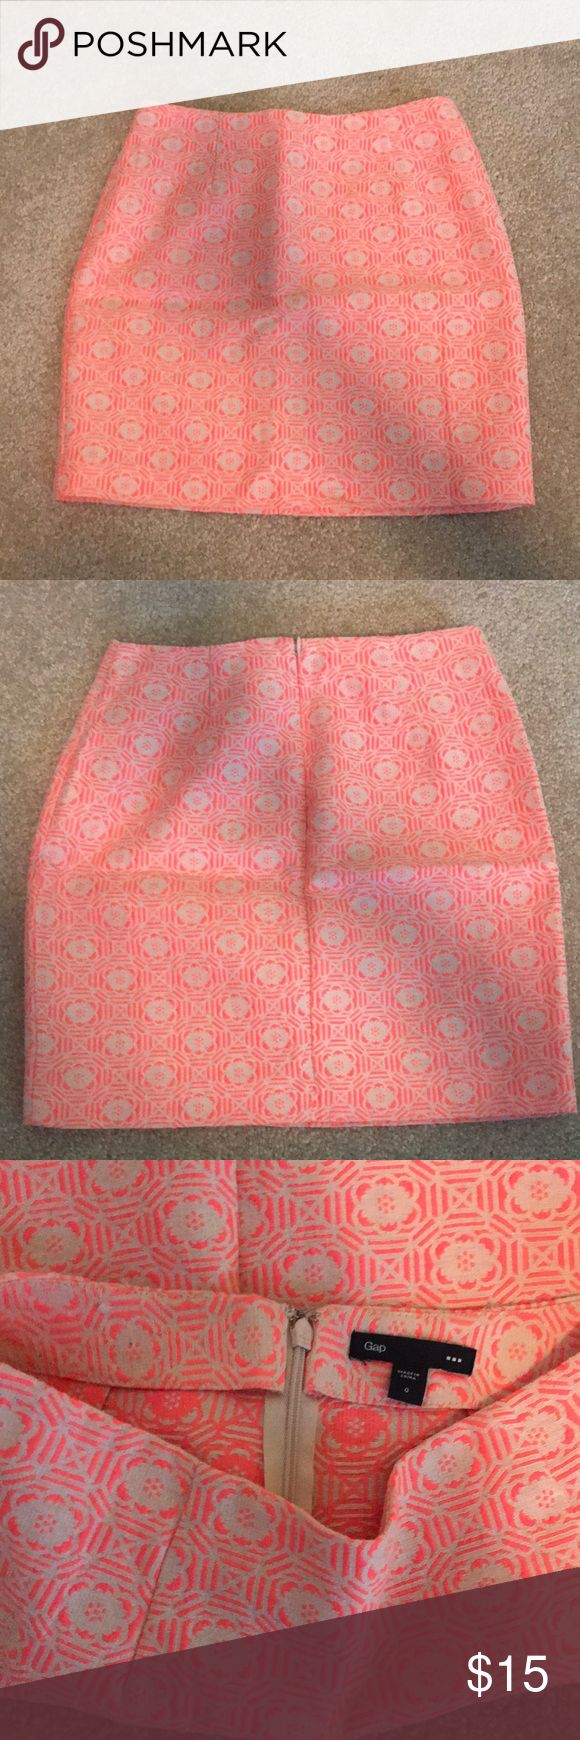 Gap pink and cream pencil skirt in flower design Gap pink and cream pencil skirt with a flower design. Barely worn is super cute on! GAP Skirts Pencil